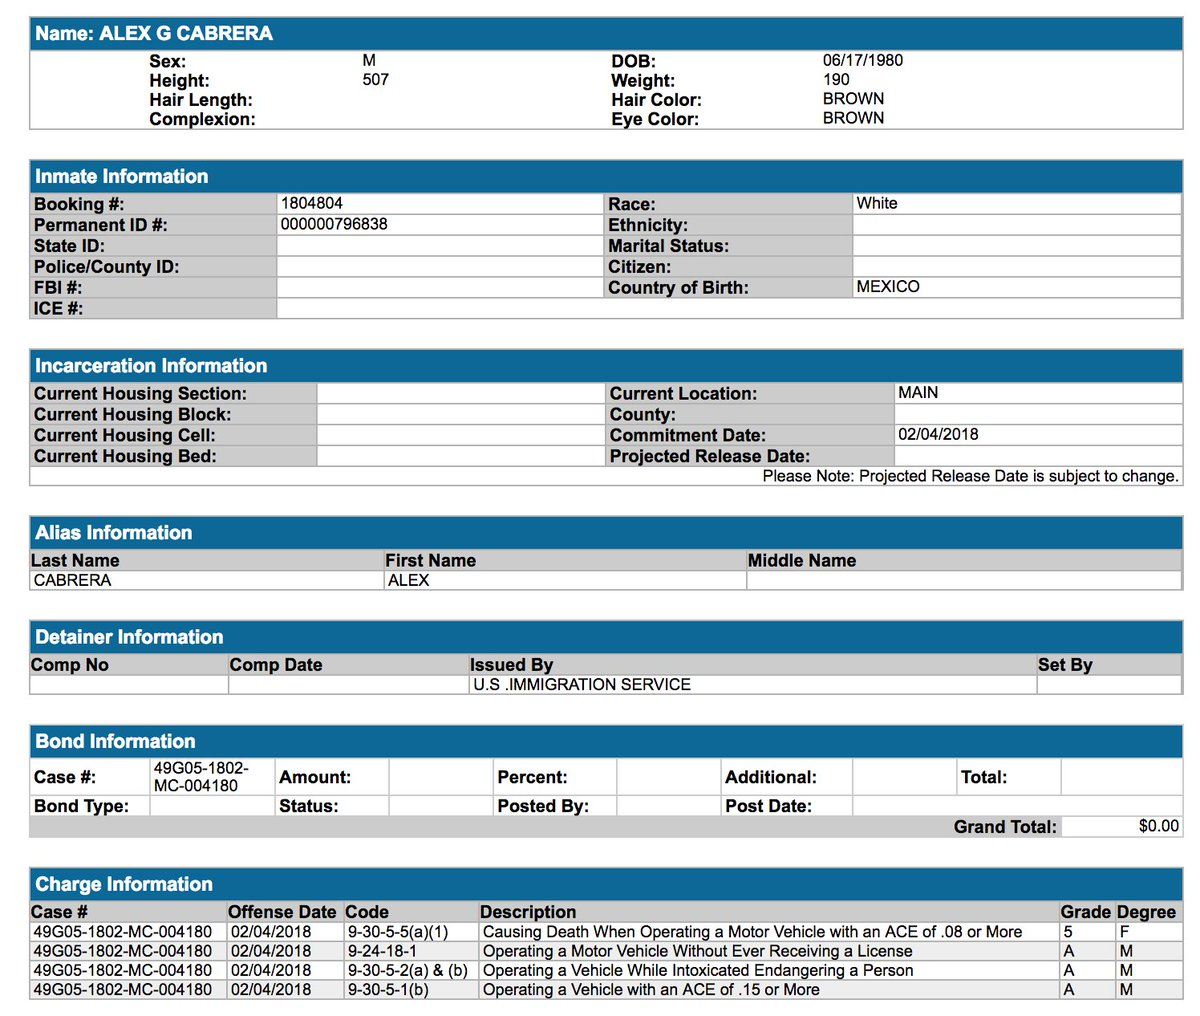 Early this morning, Indiana Colts player Edwin Jackson was struck & killed by a suspected drunk driver who was unlicensed & ran from scene. Inmate booking records show the driver, Alex Cabrera Gonsales, is from Mexico w/an ICE detainer on him. h/t @JTTriguero